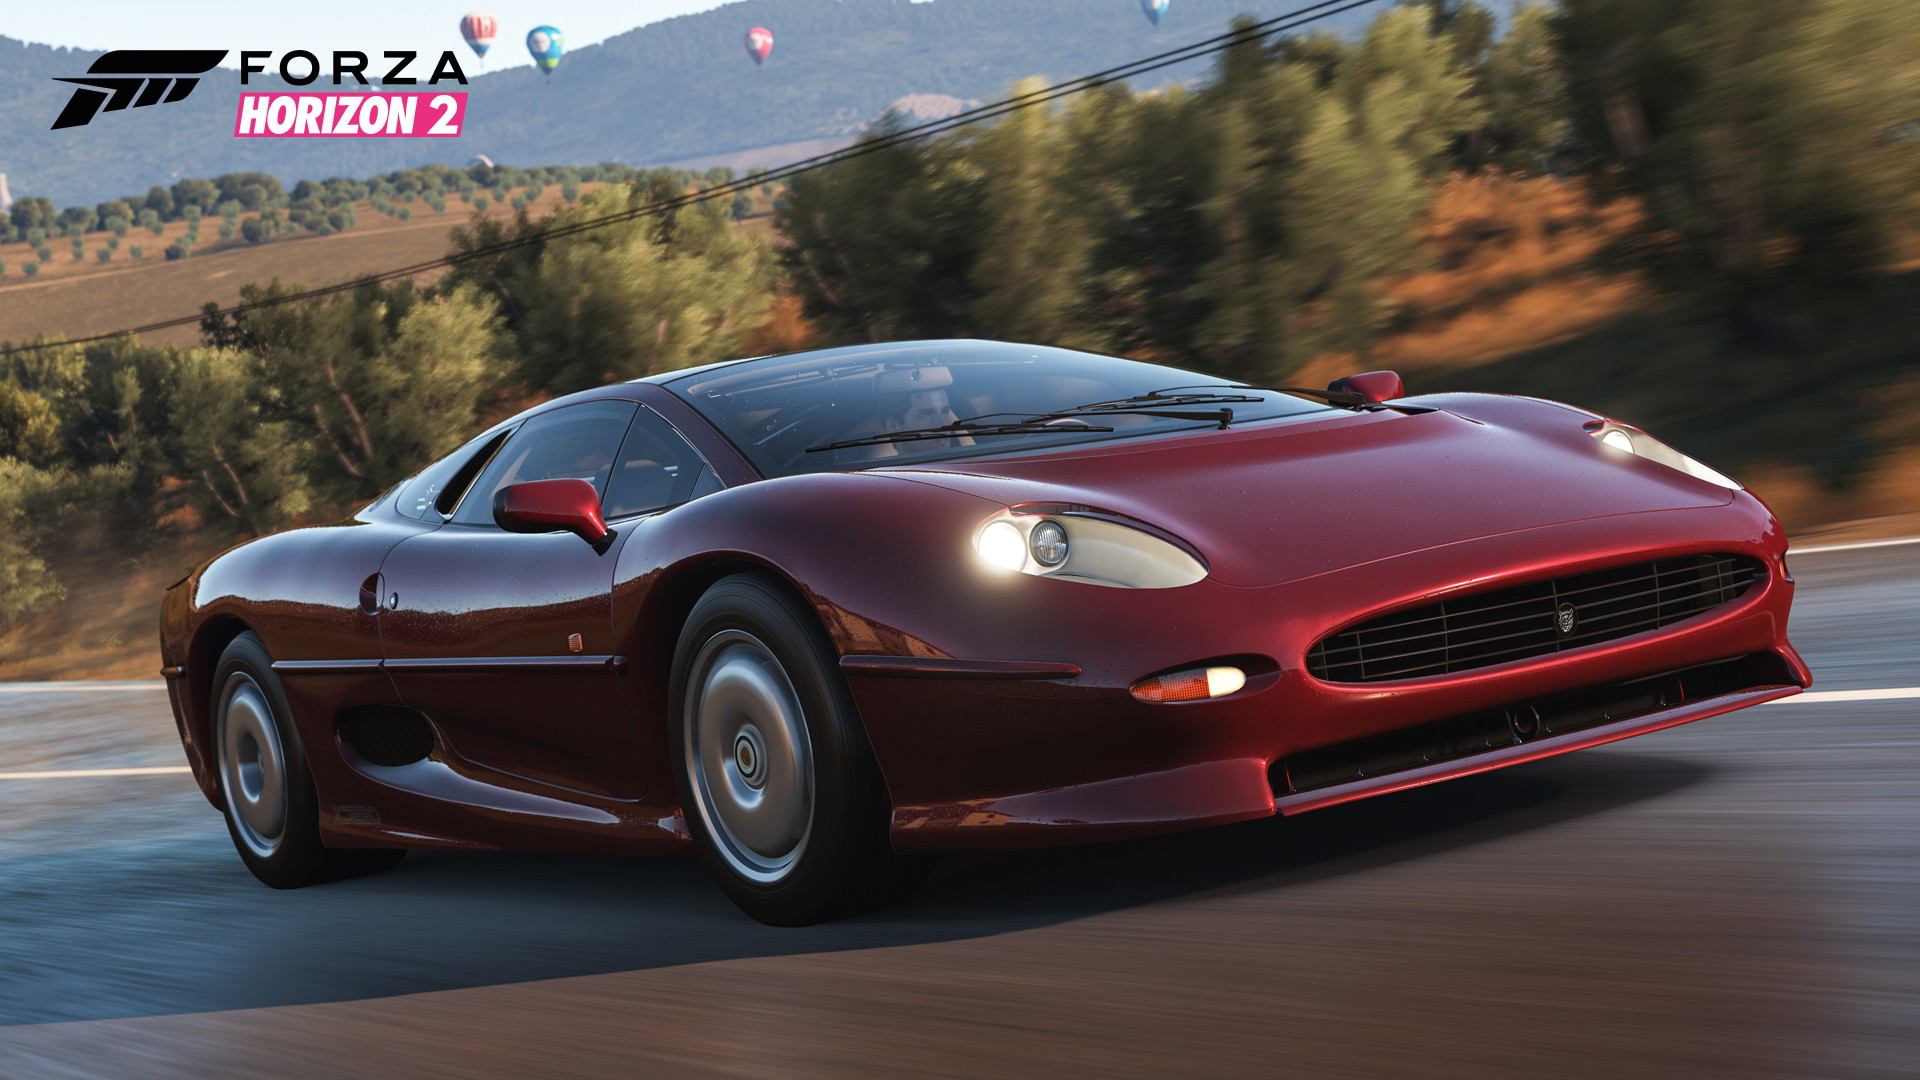 Forza Horizon 2 screenshot 2525